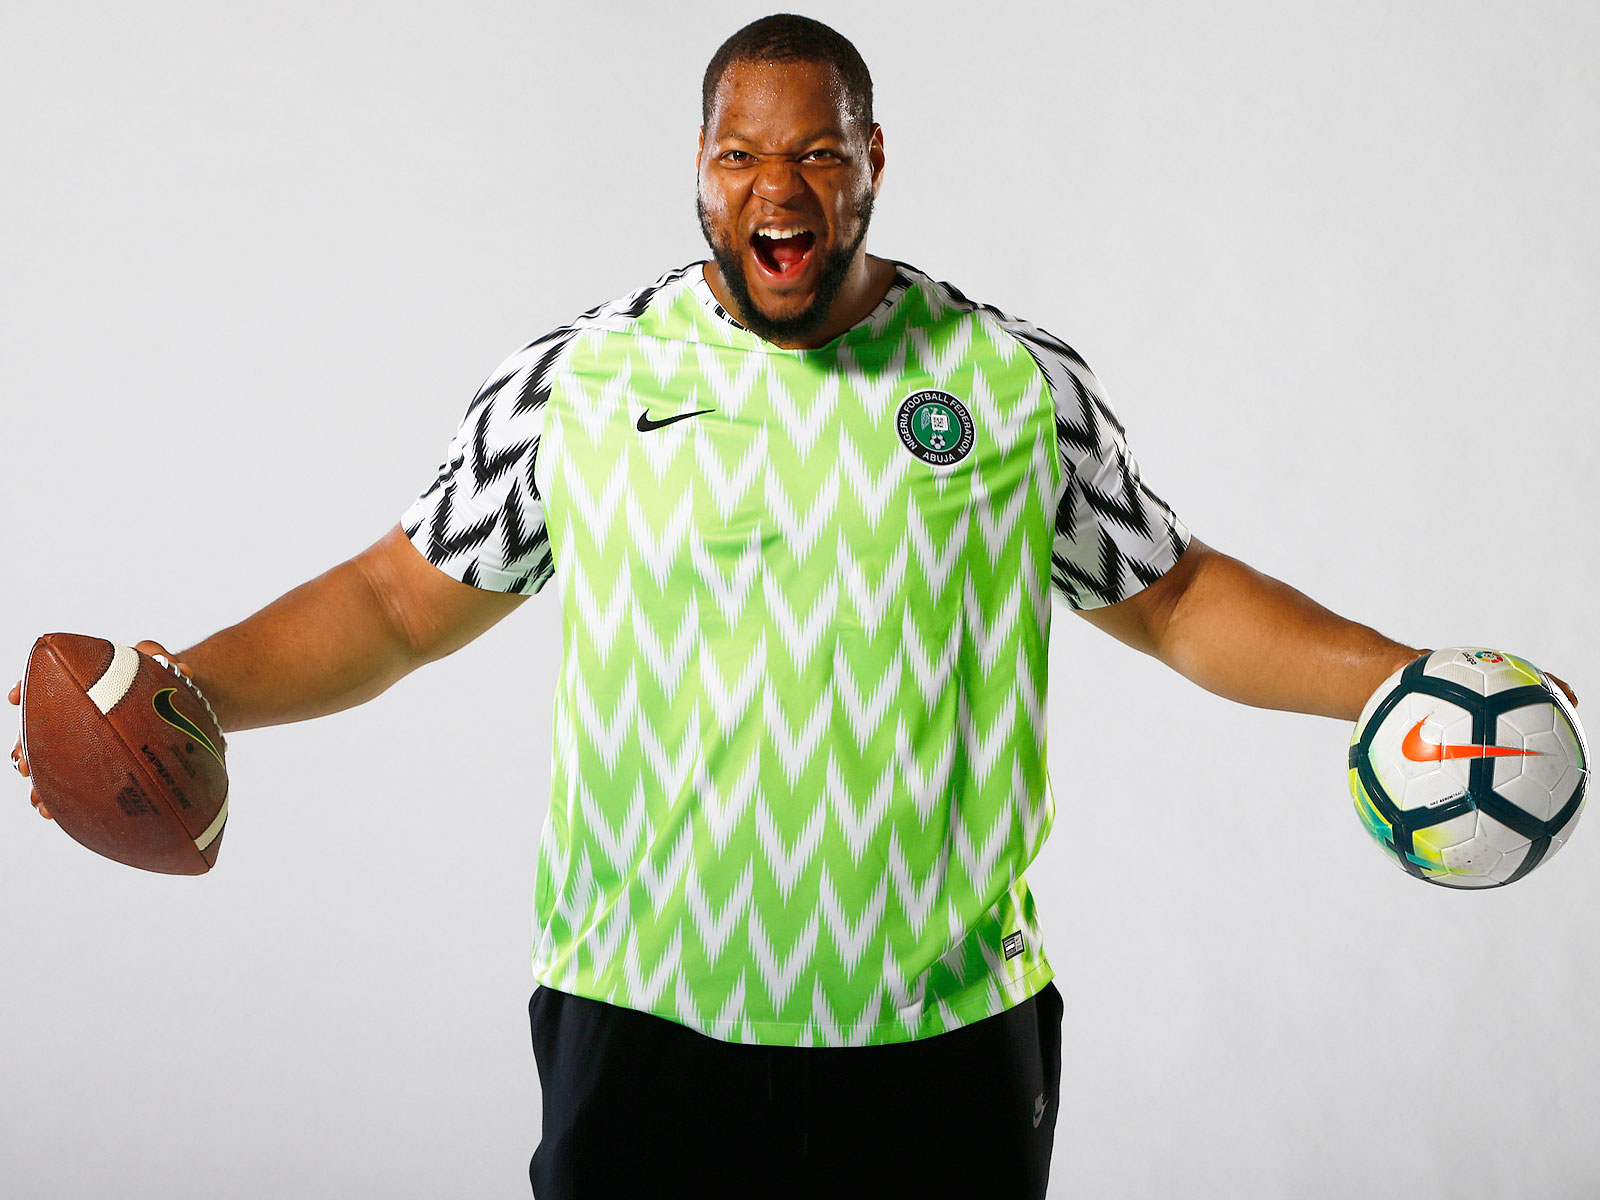 Ndamukong Suh supports Nigeria in the World Cup